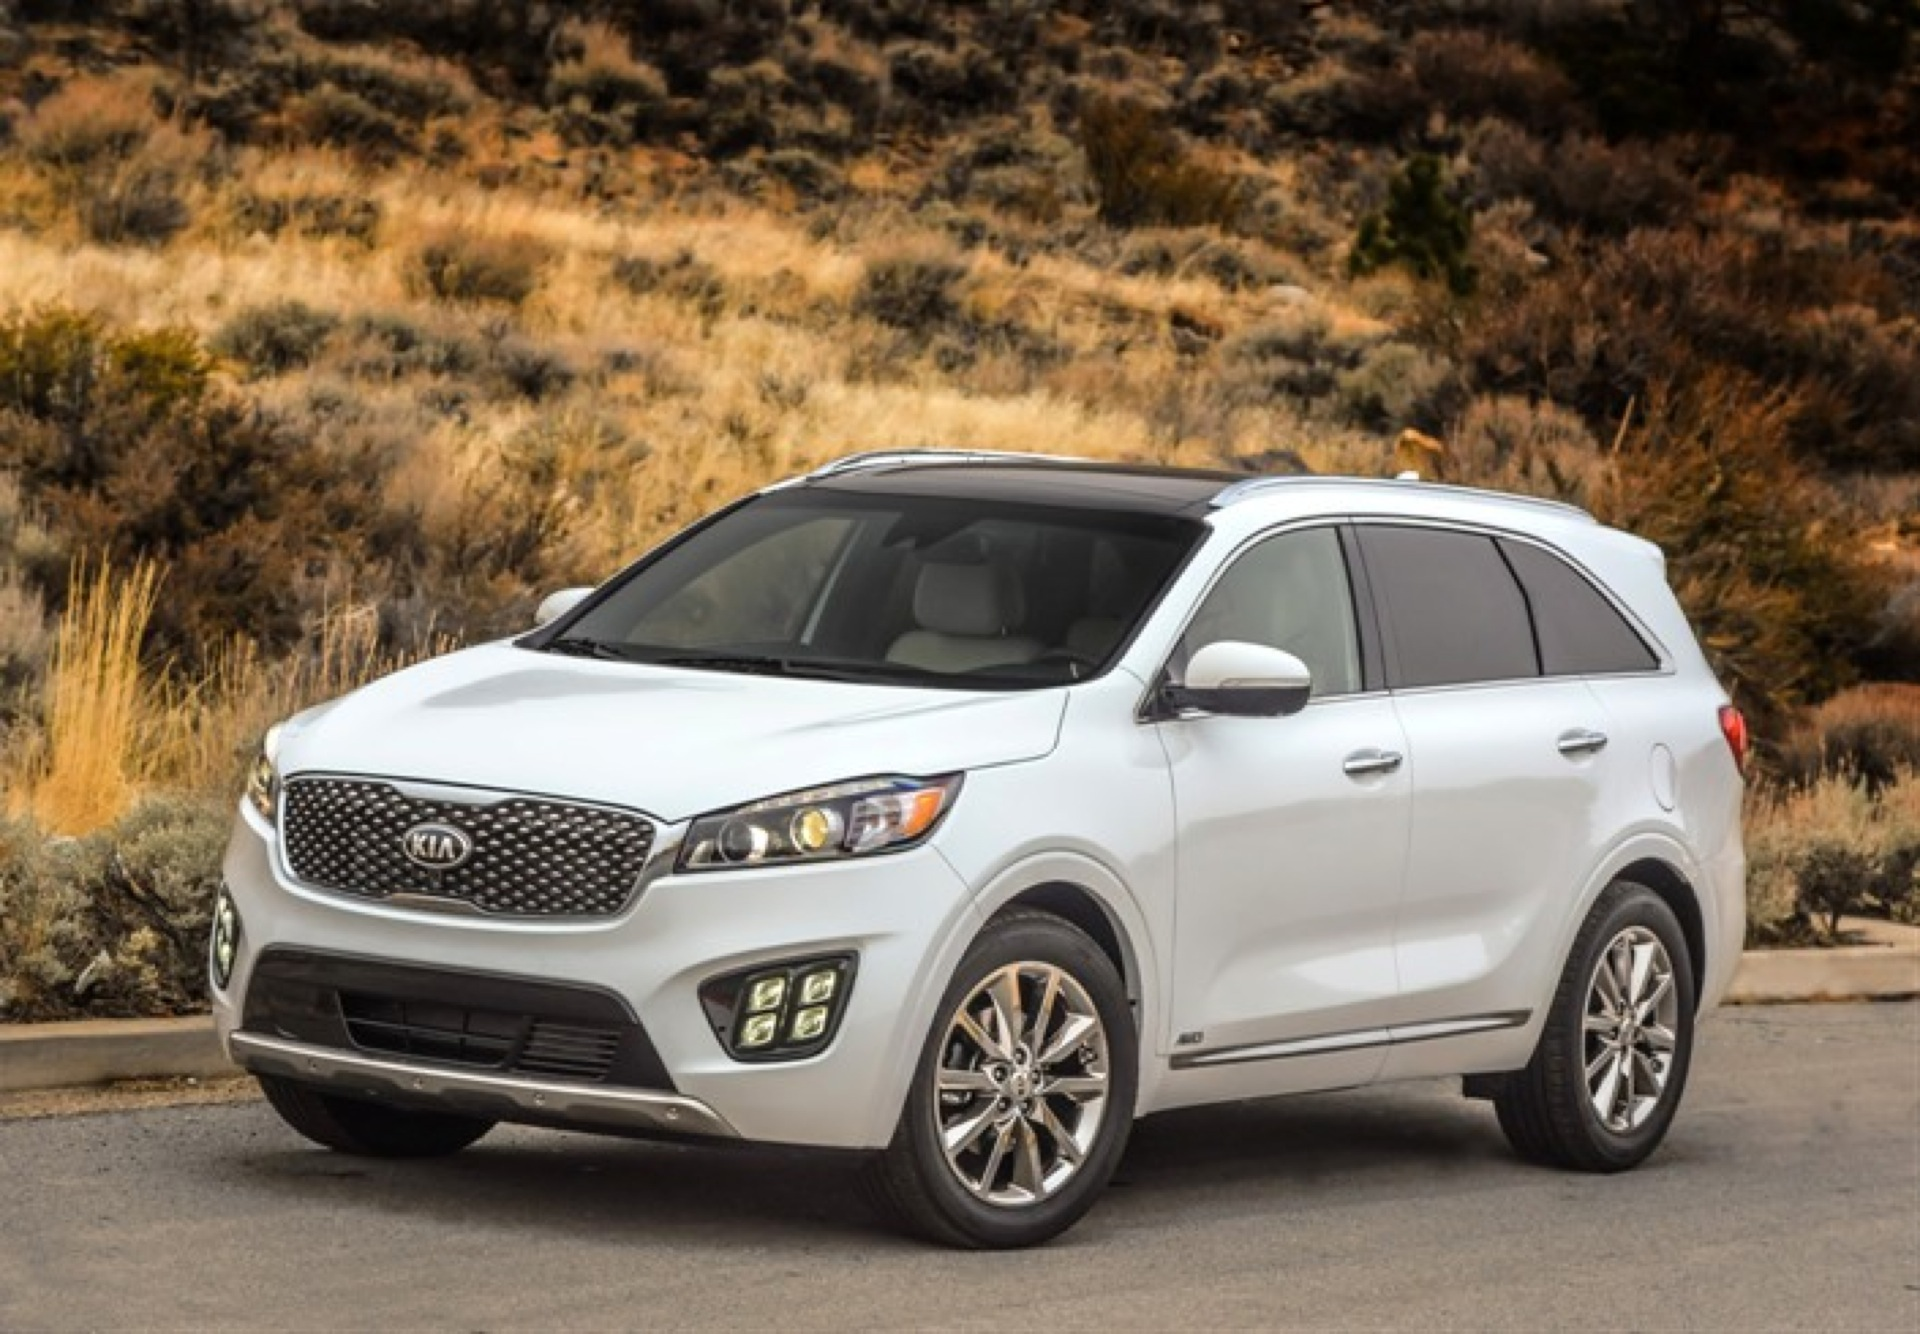 2016 Kia Sorento Video Road Test